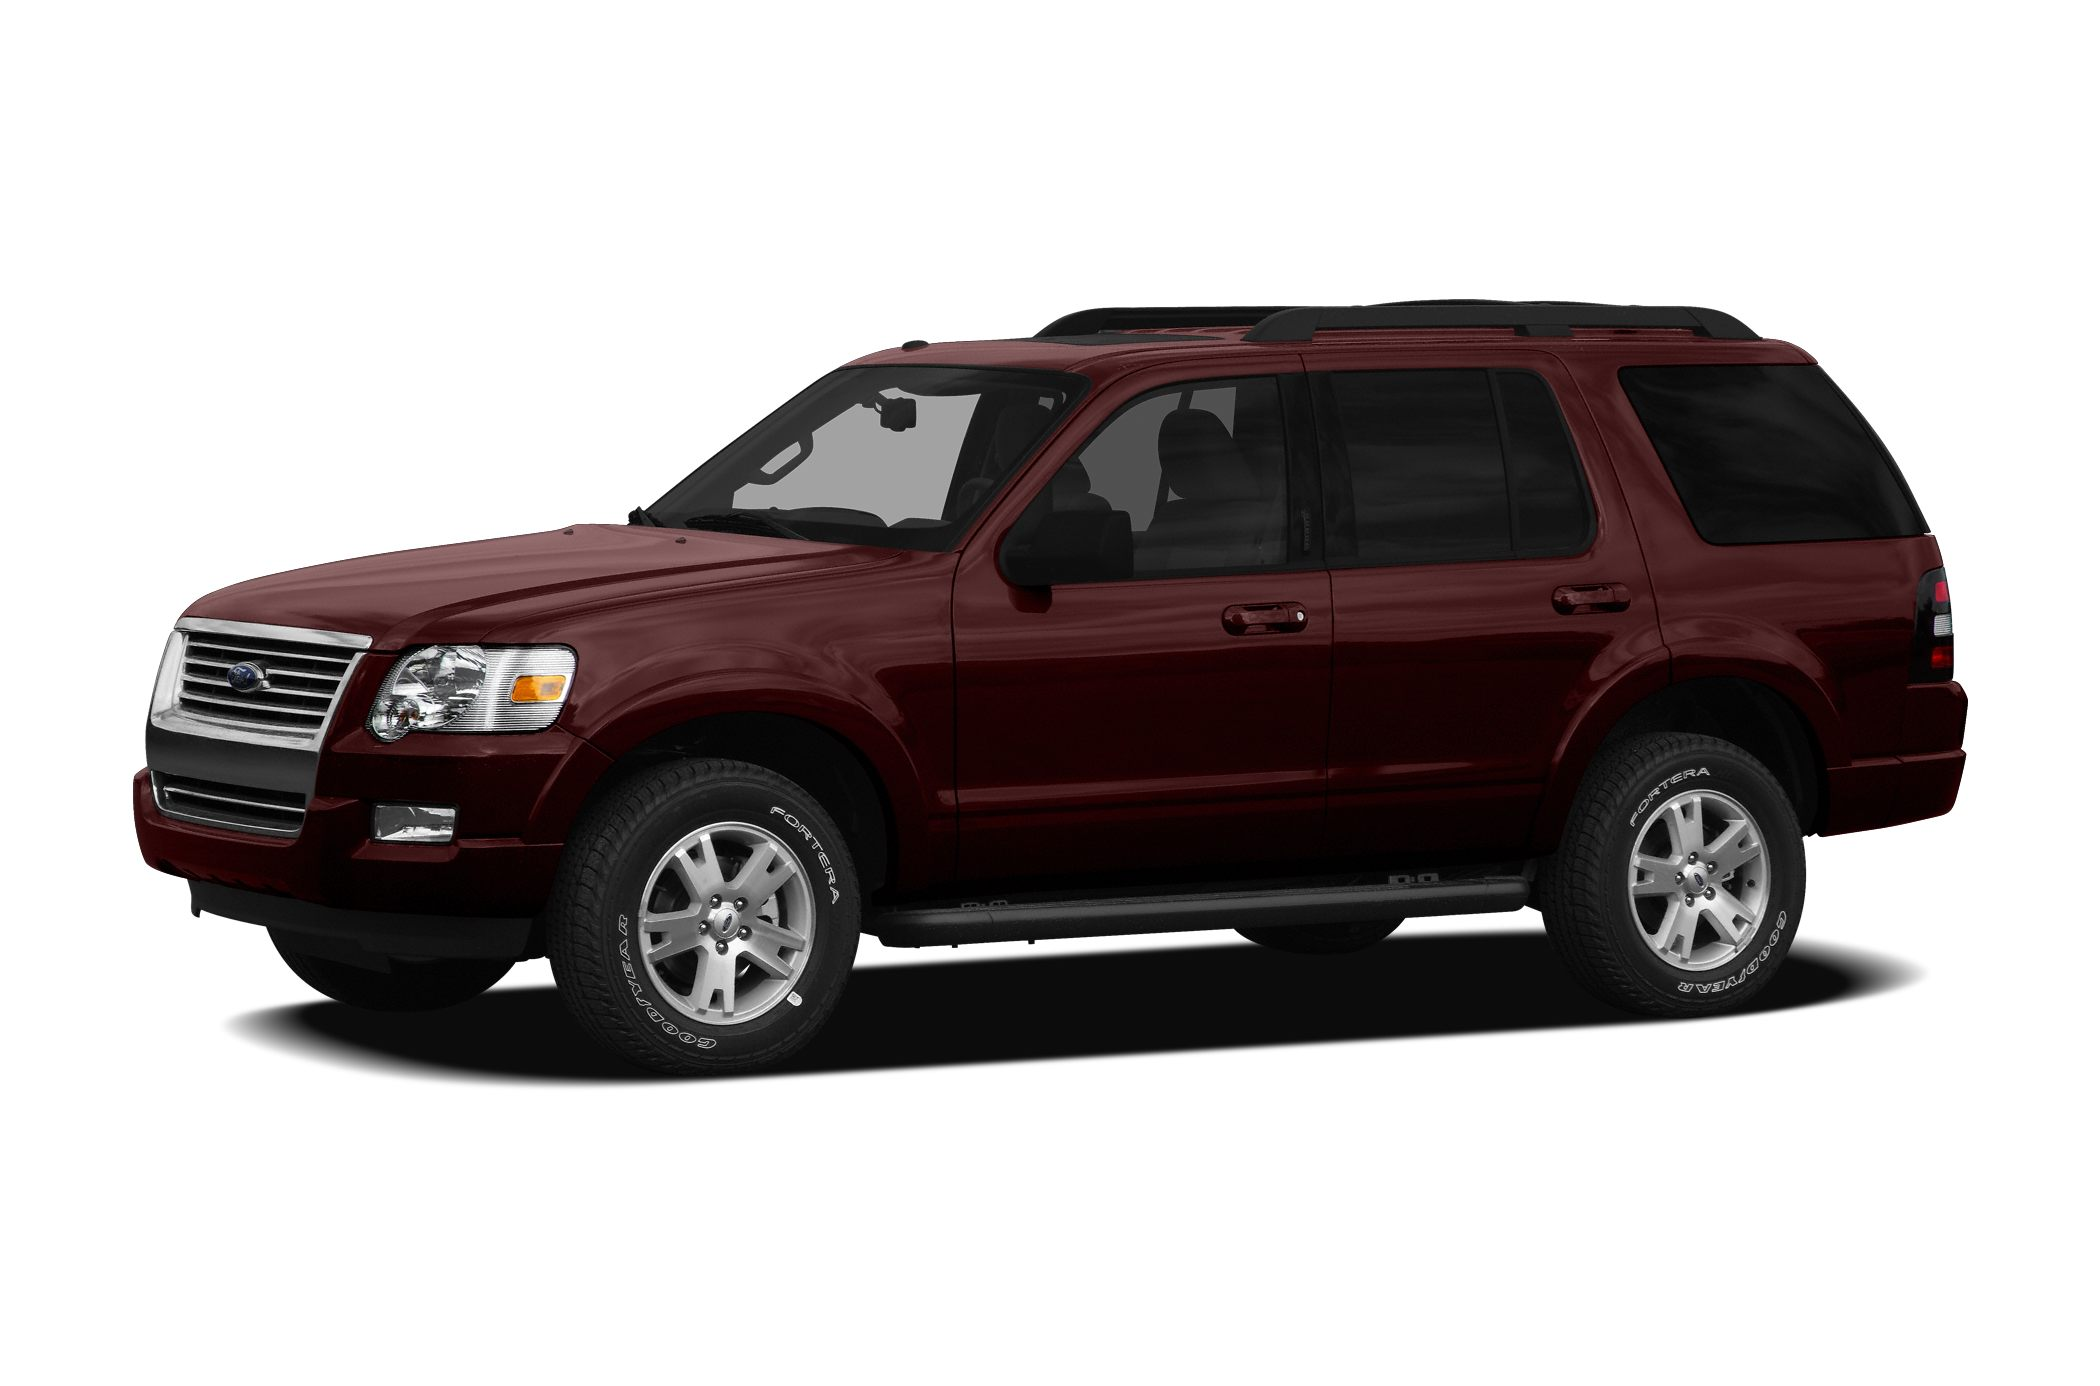 2010 Ford Explorer XLT SUV for sale in Enid for $15,500 with 65,415 miles.